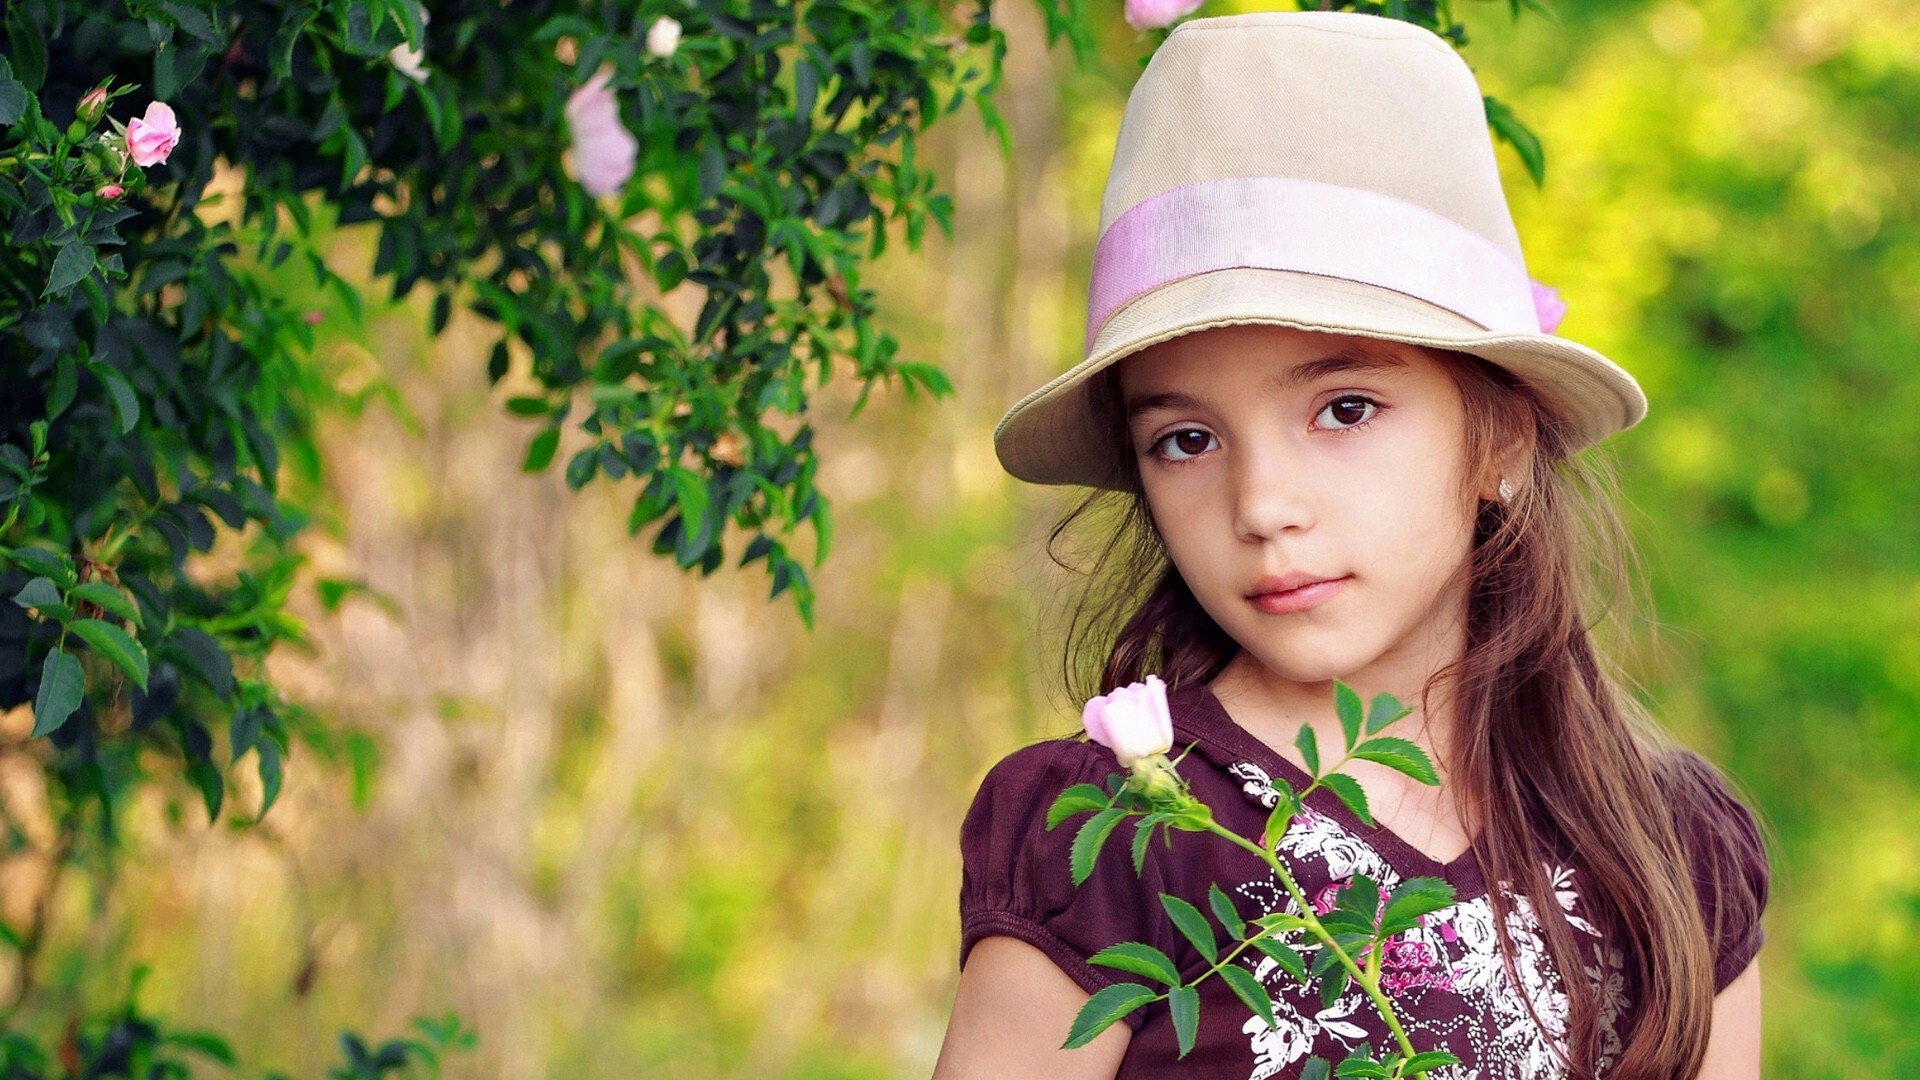 beautiful baby girl in cap | hd wallpapers